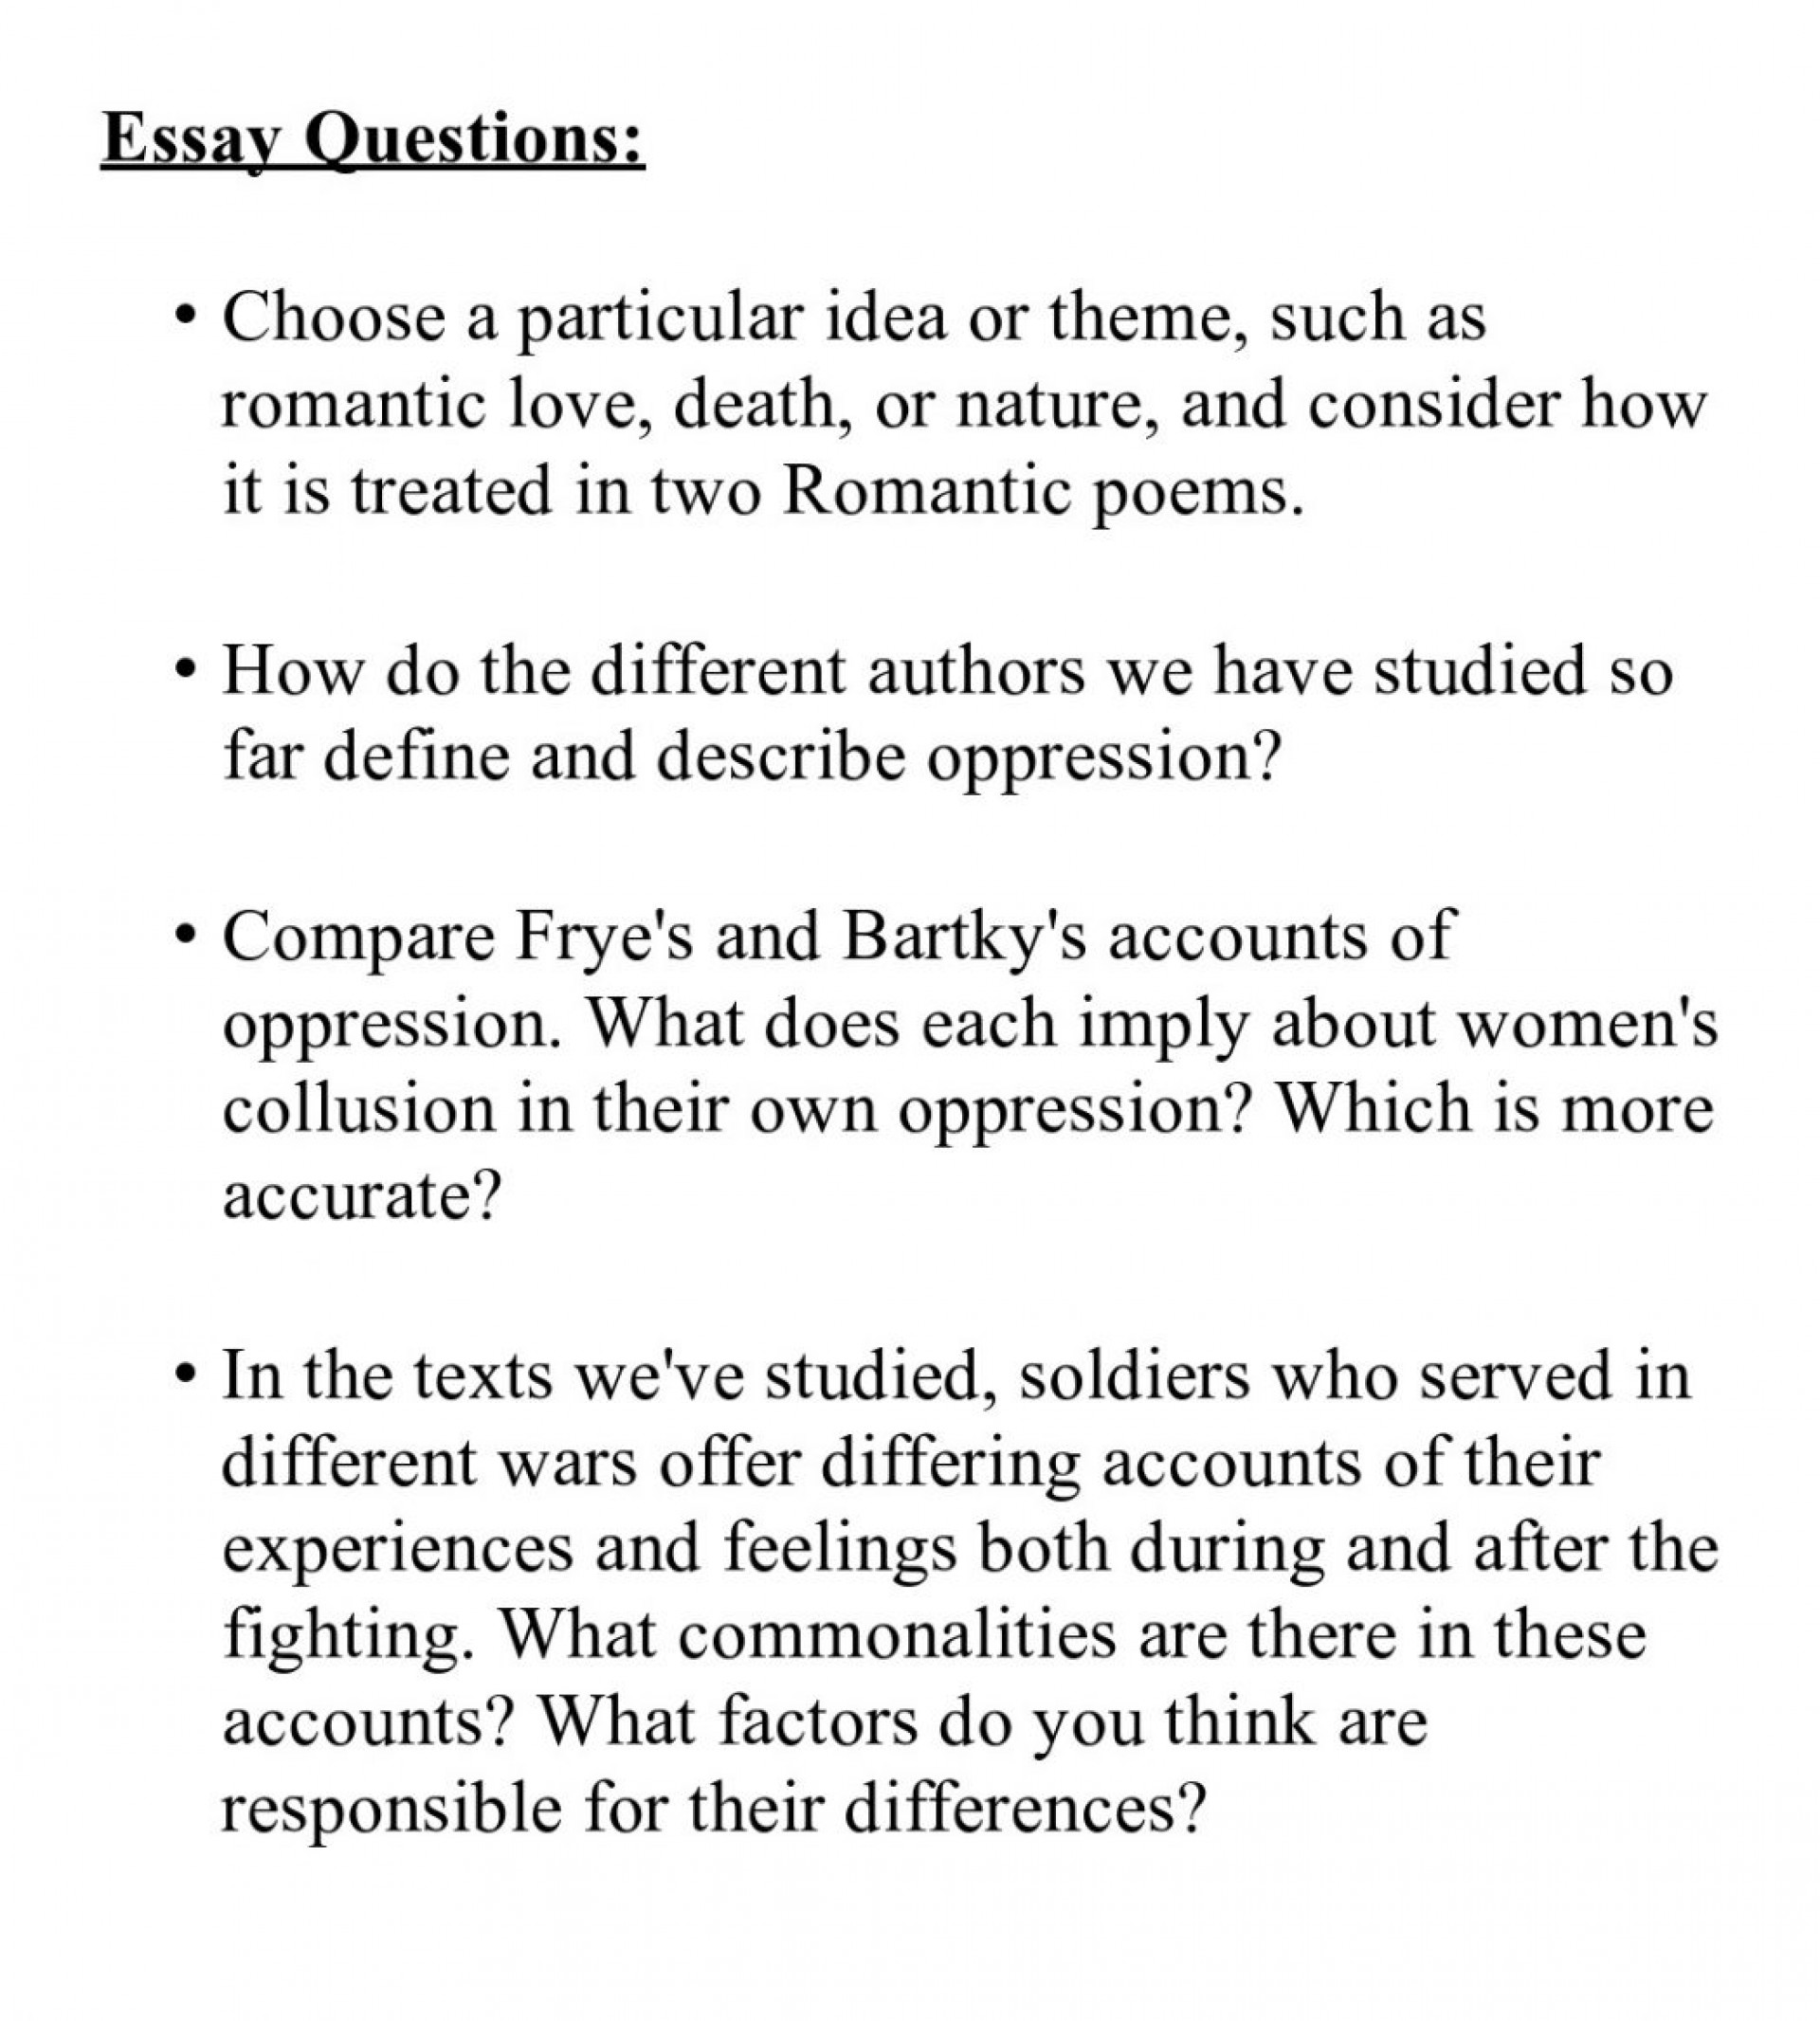 006 Virginia Tech Essay Prompts Example Sample Of Evaluation Questions For Essays Ques Imposing How To Answer 2017 1920